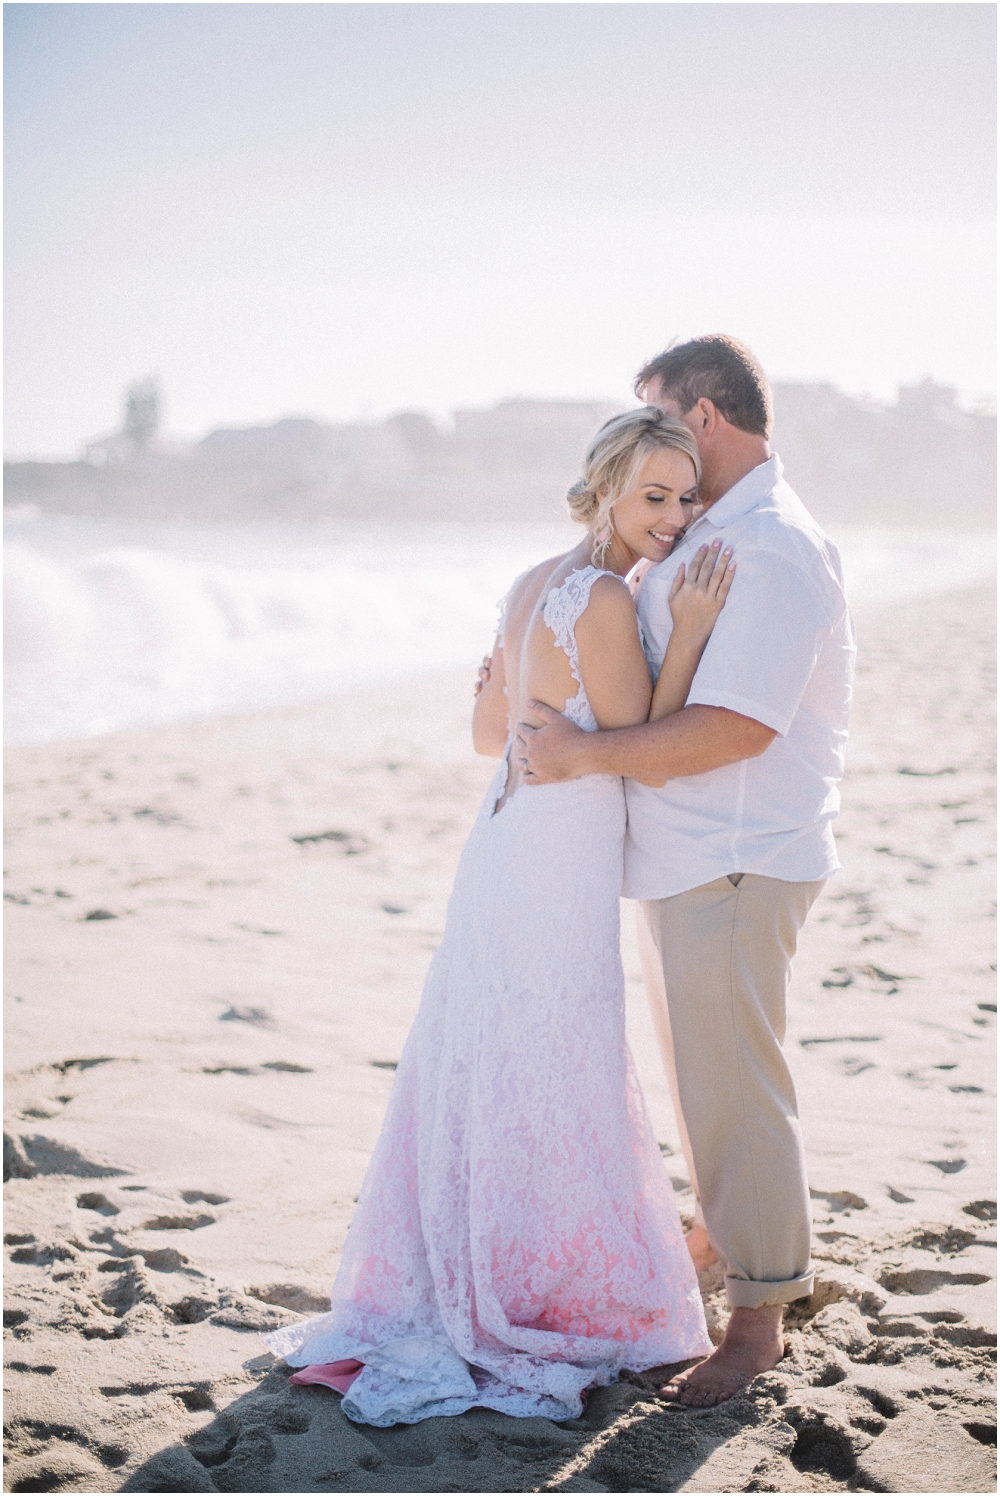 Western Cape Wedding Photographer Ronel Kruger Photography Cape Town_4054.jpg